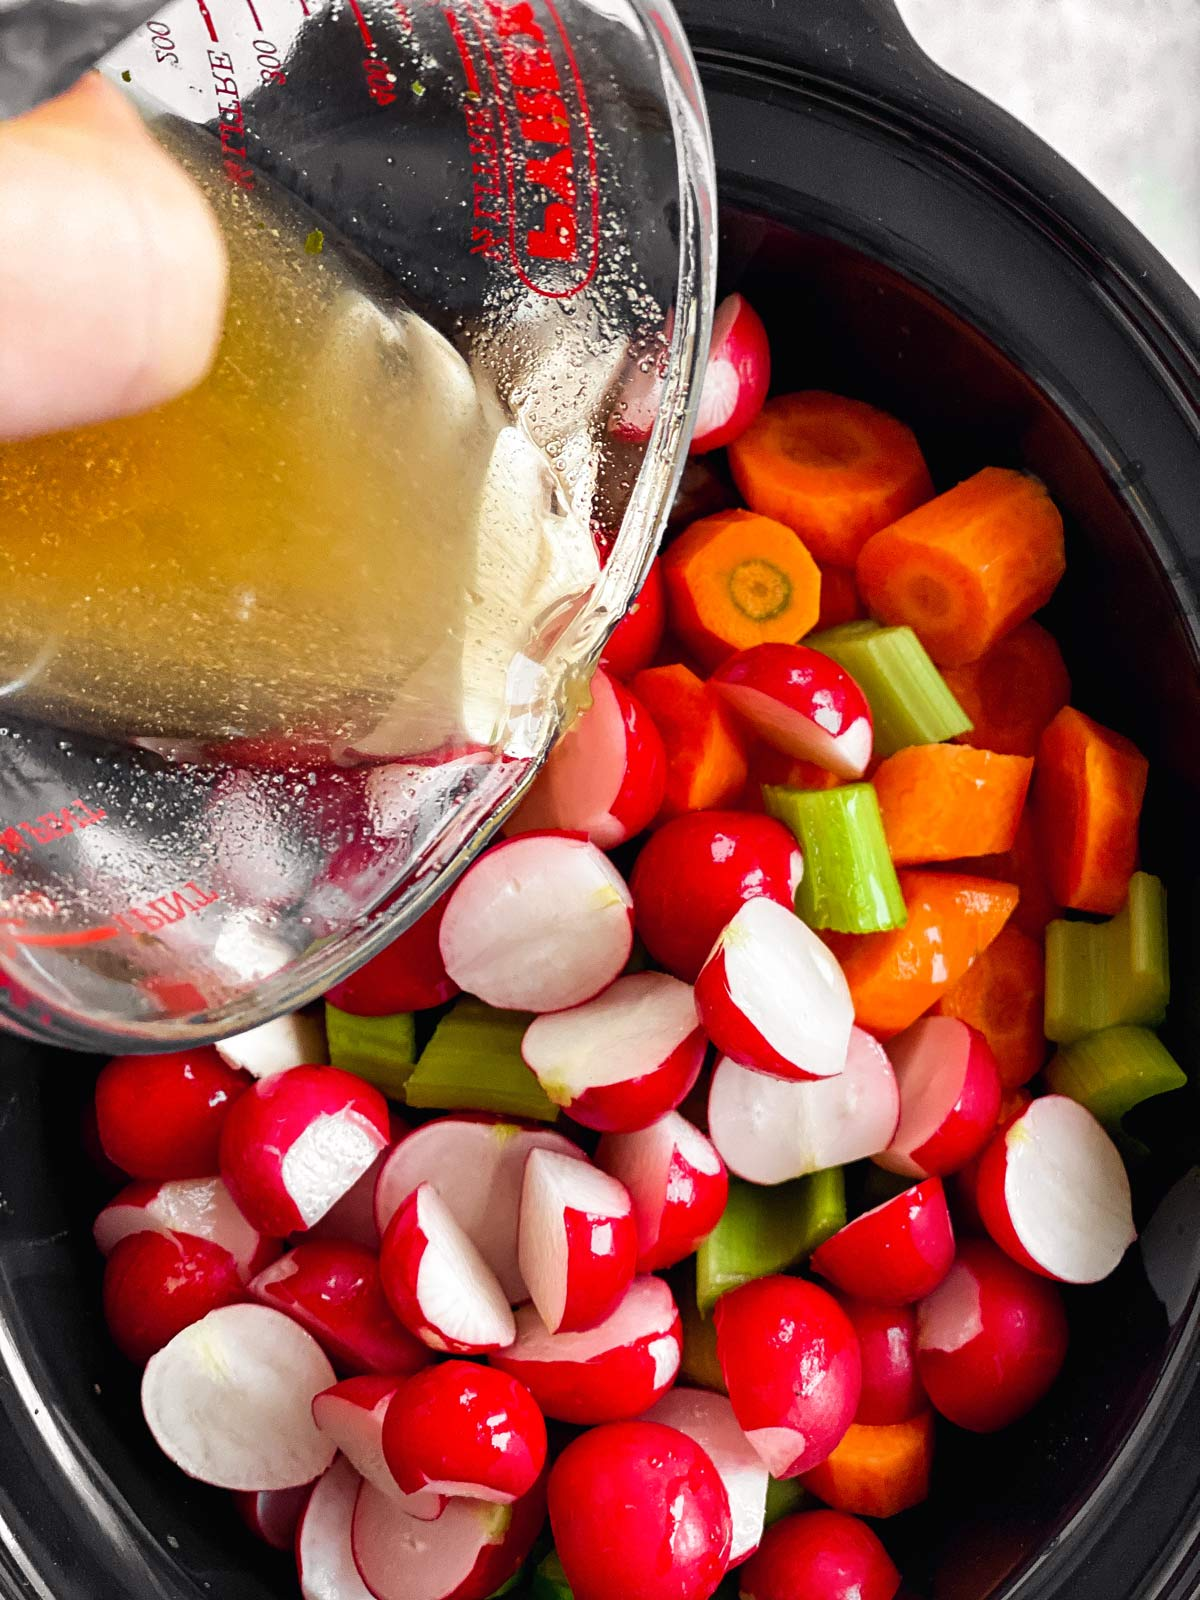 pouring beef broth over sliced vegetables in black slow cooker